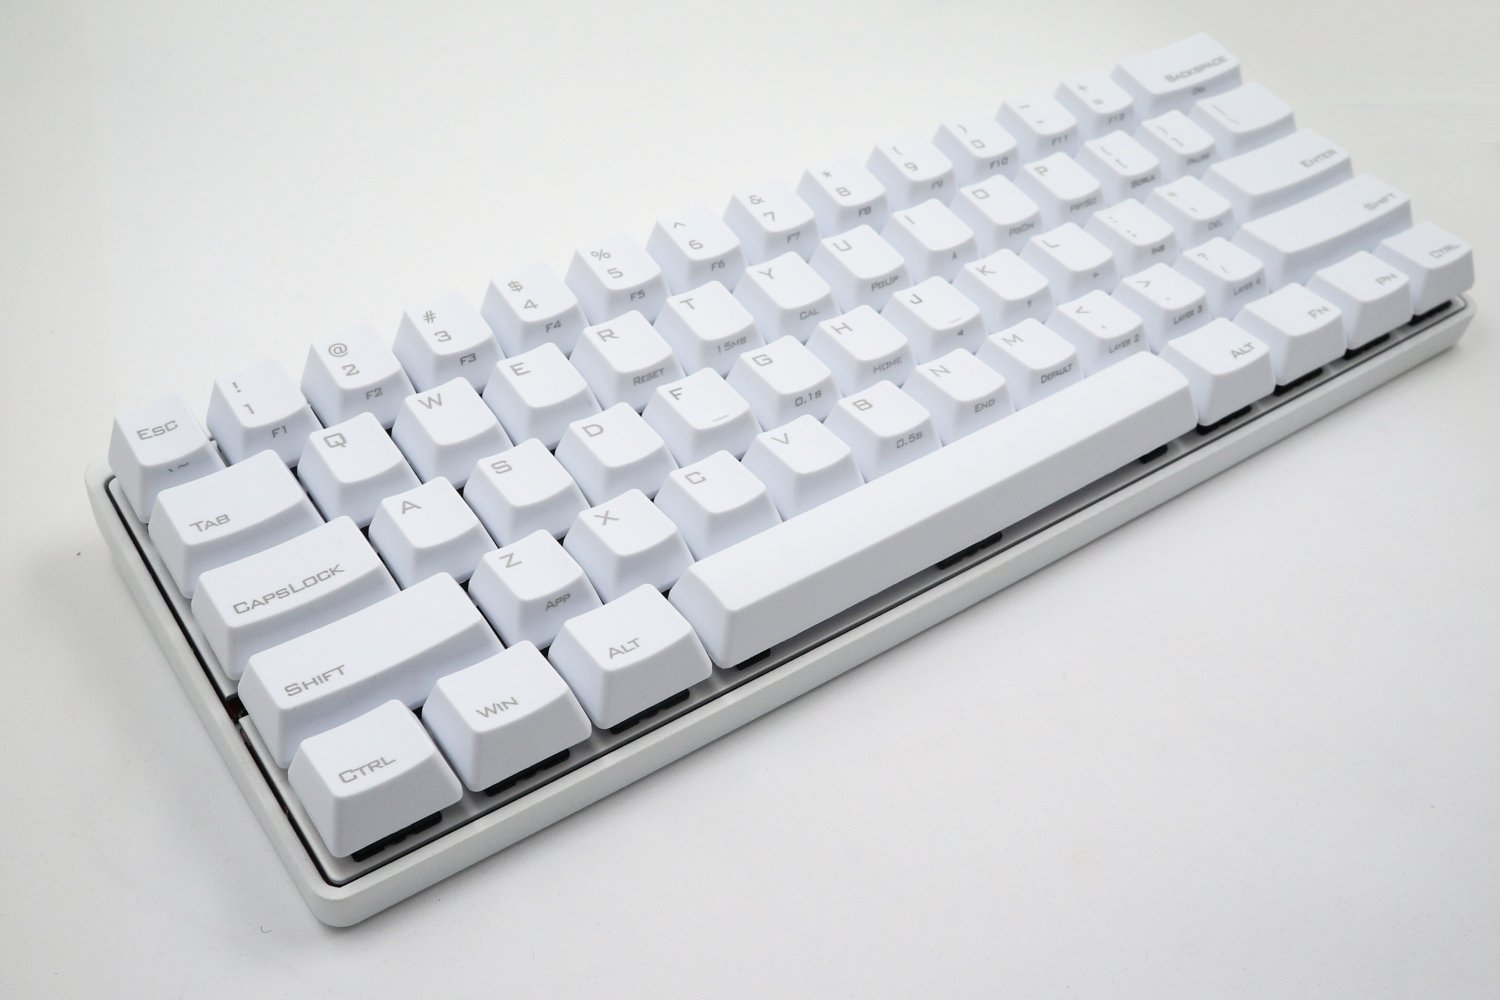 Mechanical Keyboard - KBC Poker 3 (Pok3r) - White Case - PBT Keycaps - Cherry Mx-Milky [Metal Casing]